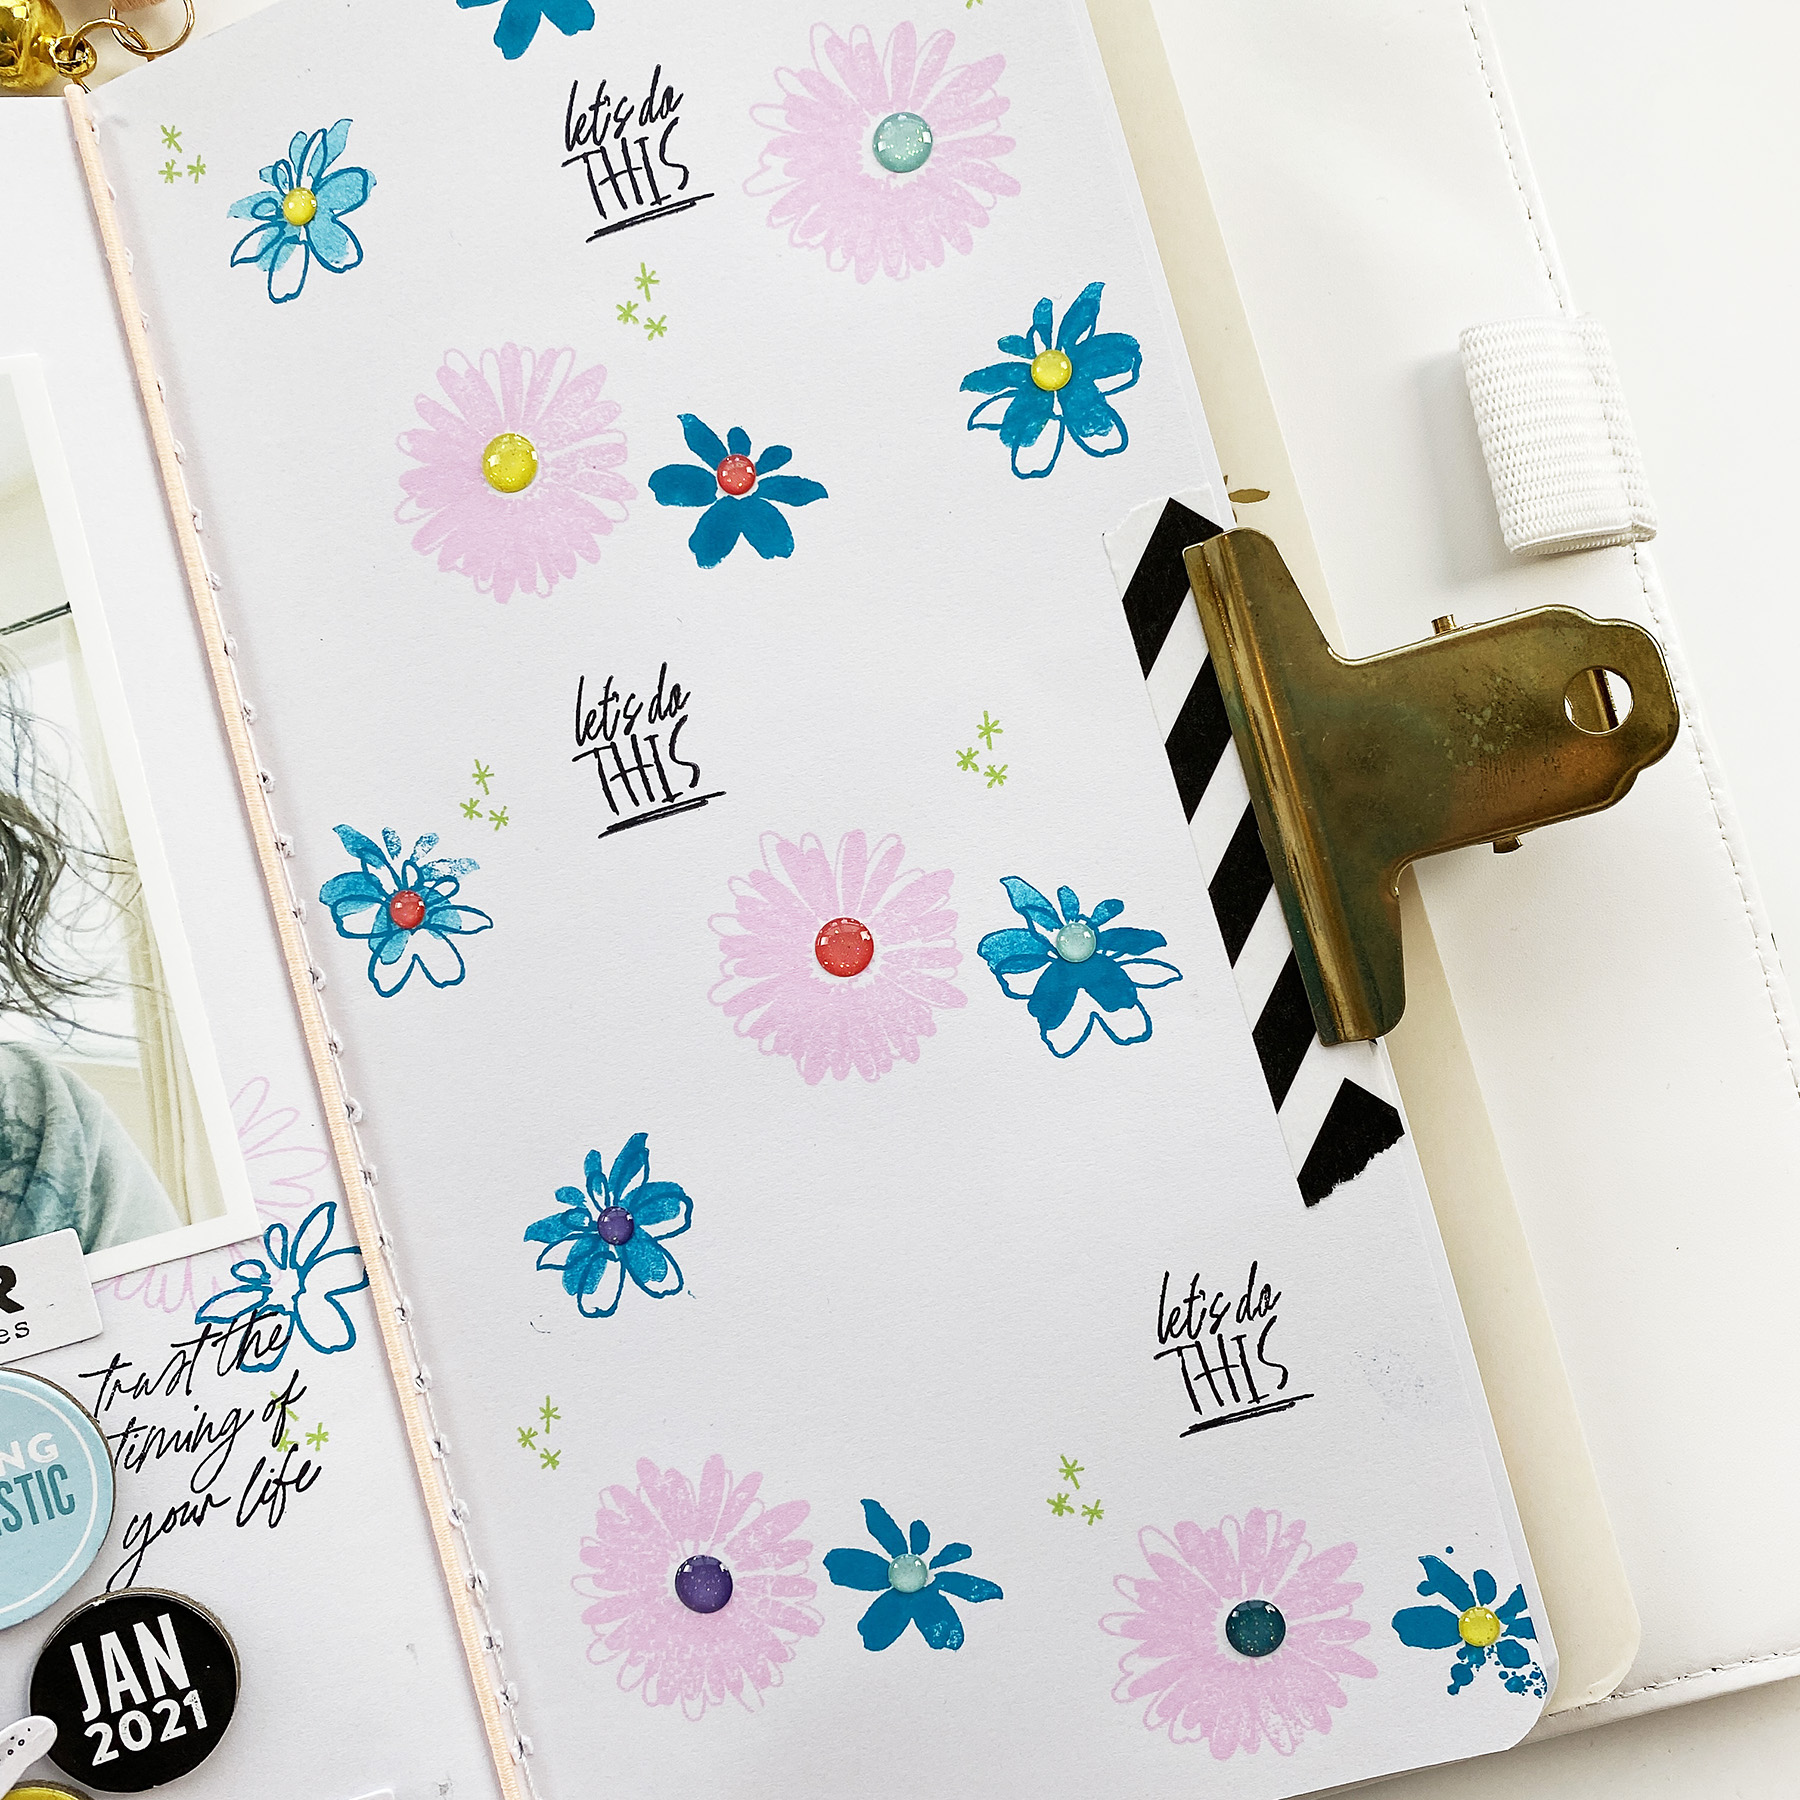 Travelers Notebook Layout | Lets Do This ft. Cocoa Daisy New Chapter Kit